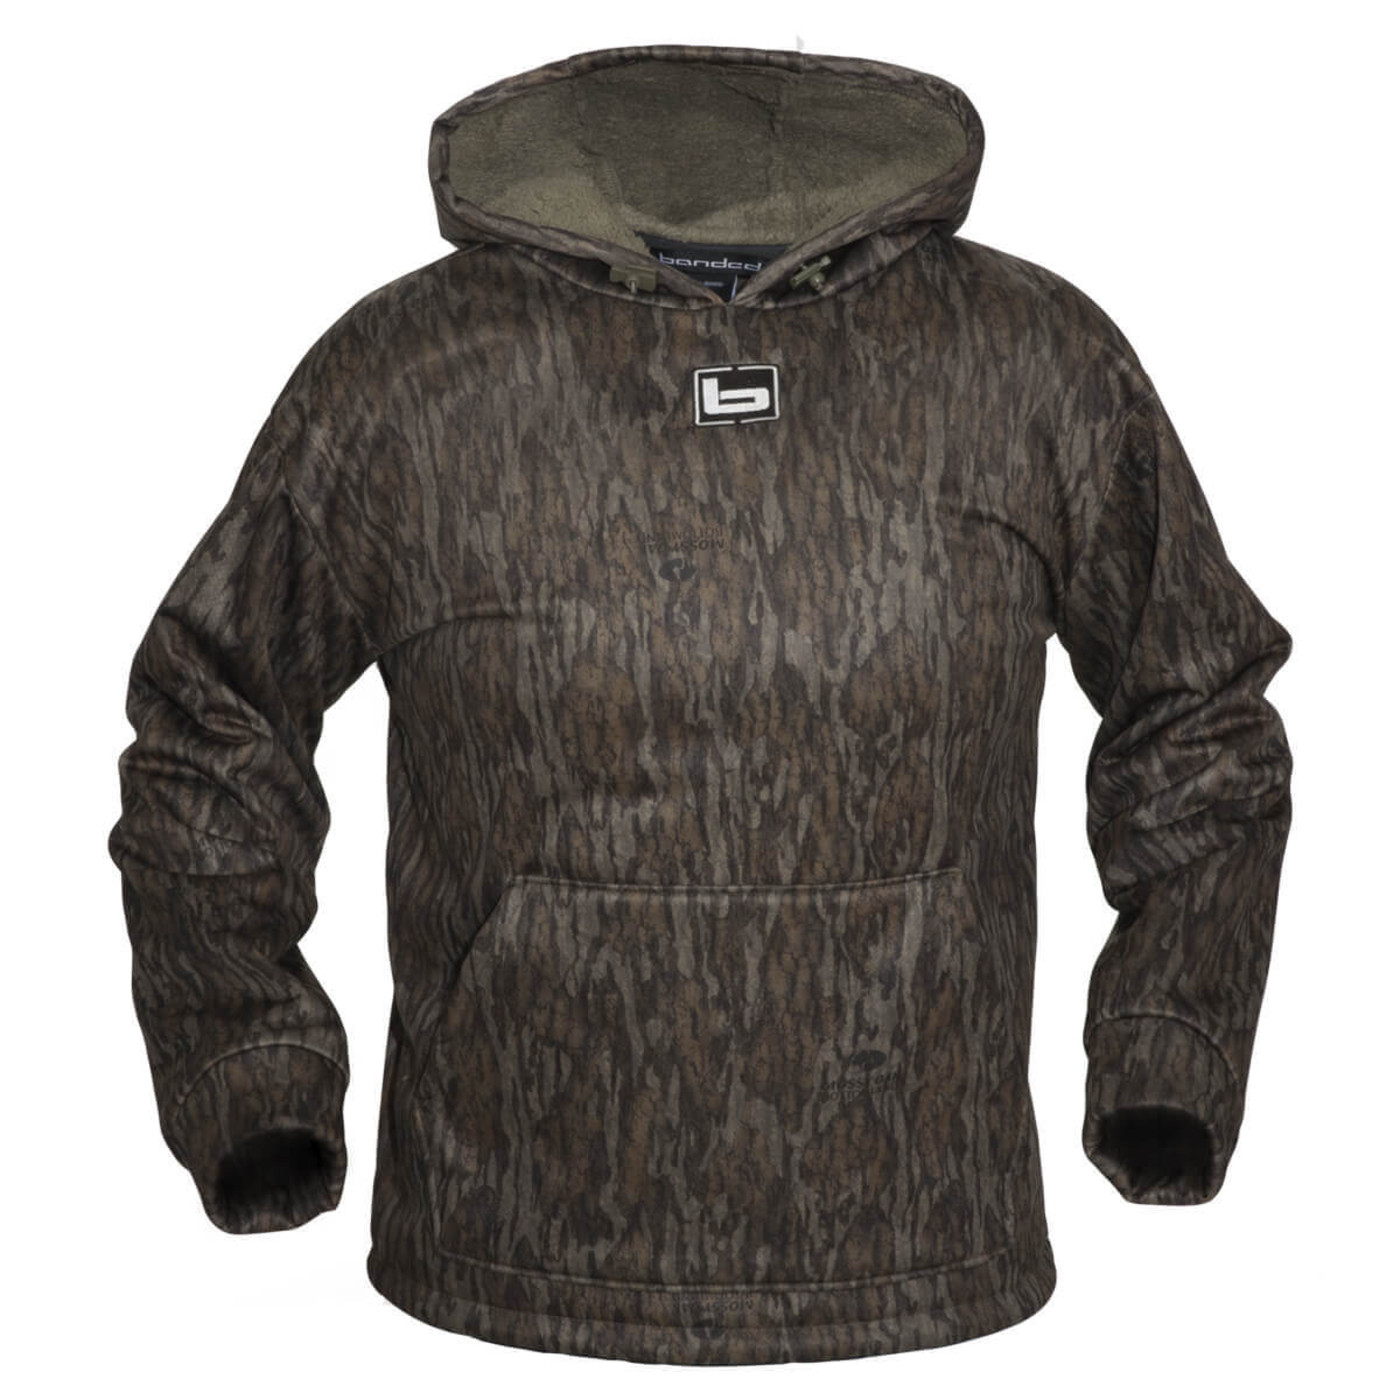 Banded Atchafalaya Hoodie in Mossy Oak Bottomland Color